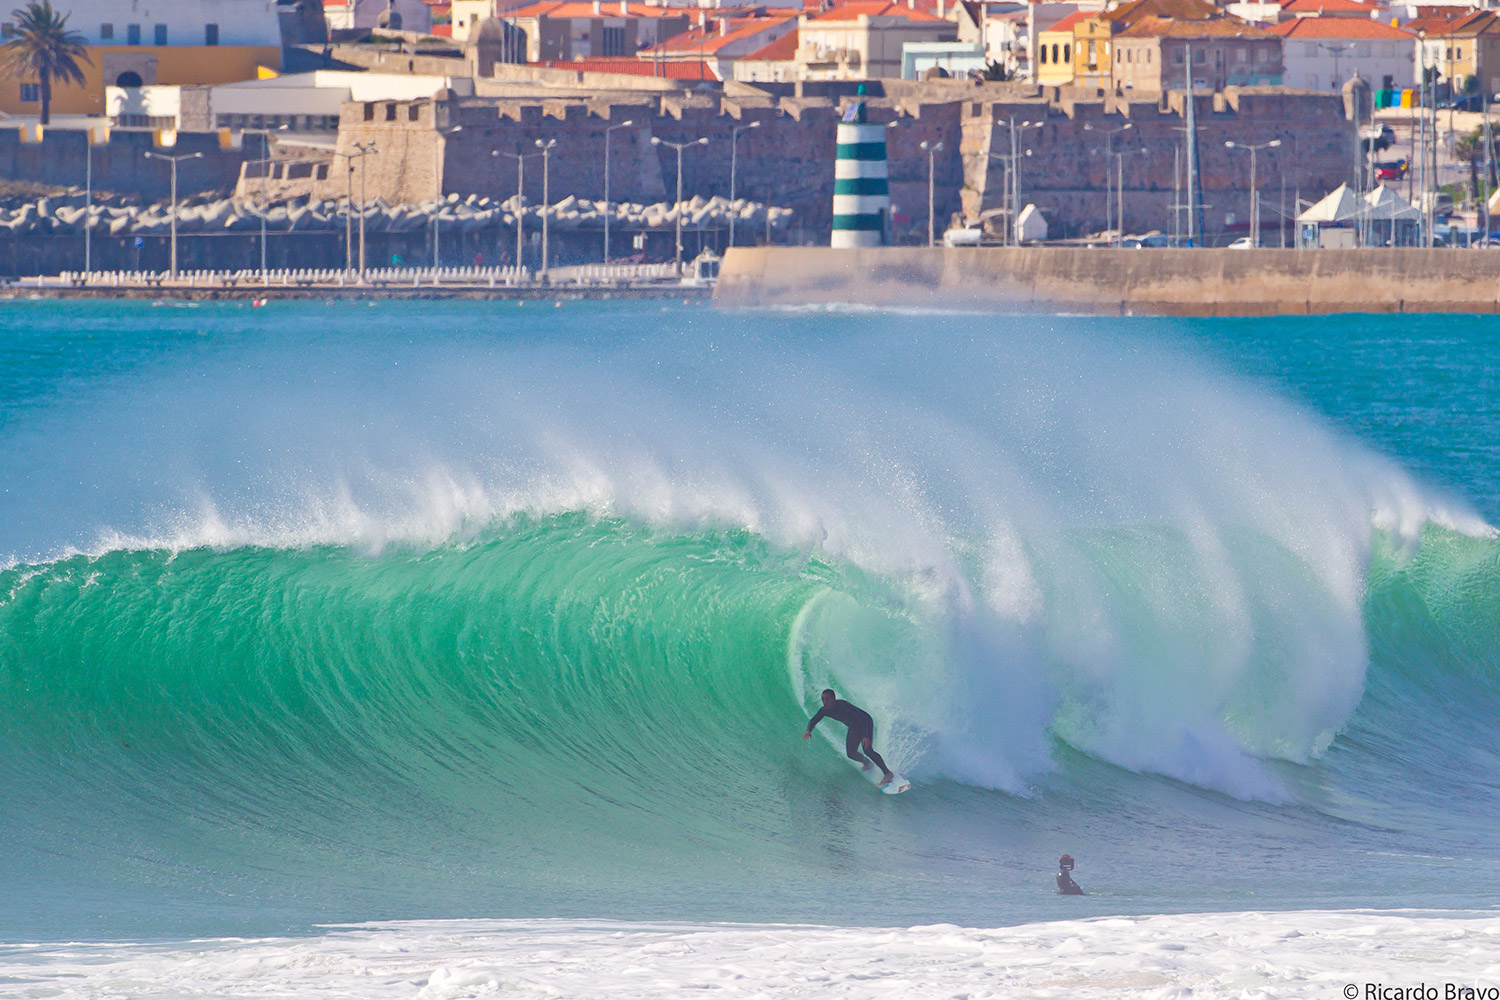 Supertubos, Peniche - Portugal Road Trip 14 Must See Places! | Intrepid Introvert